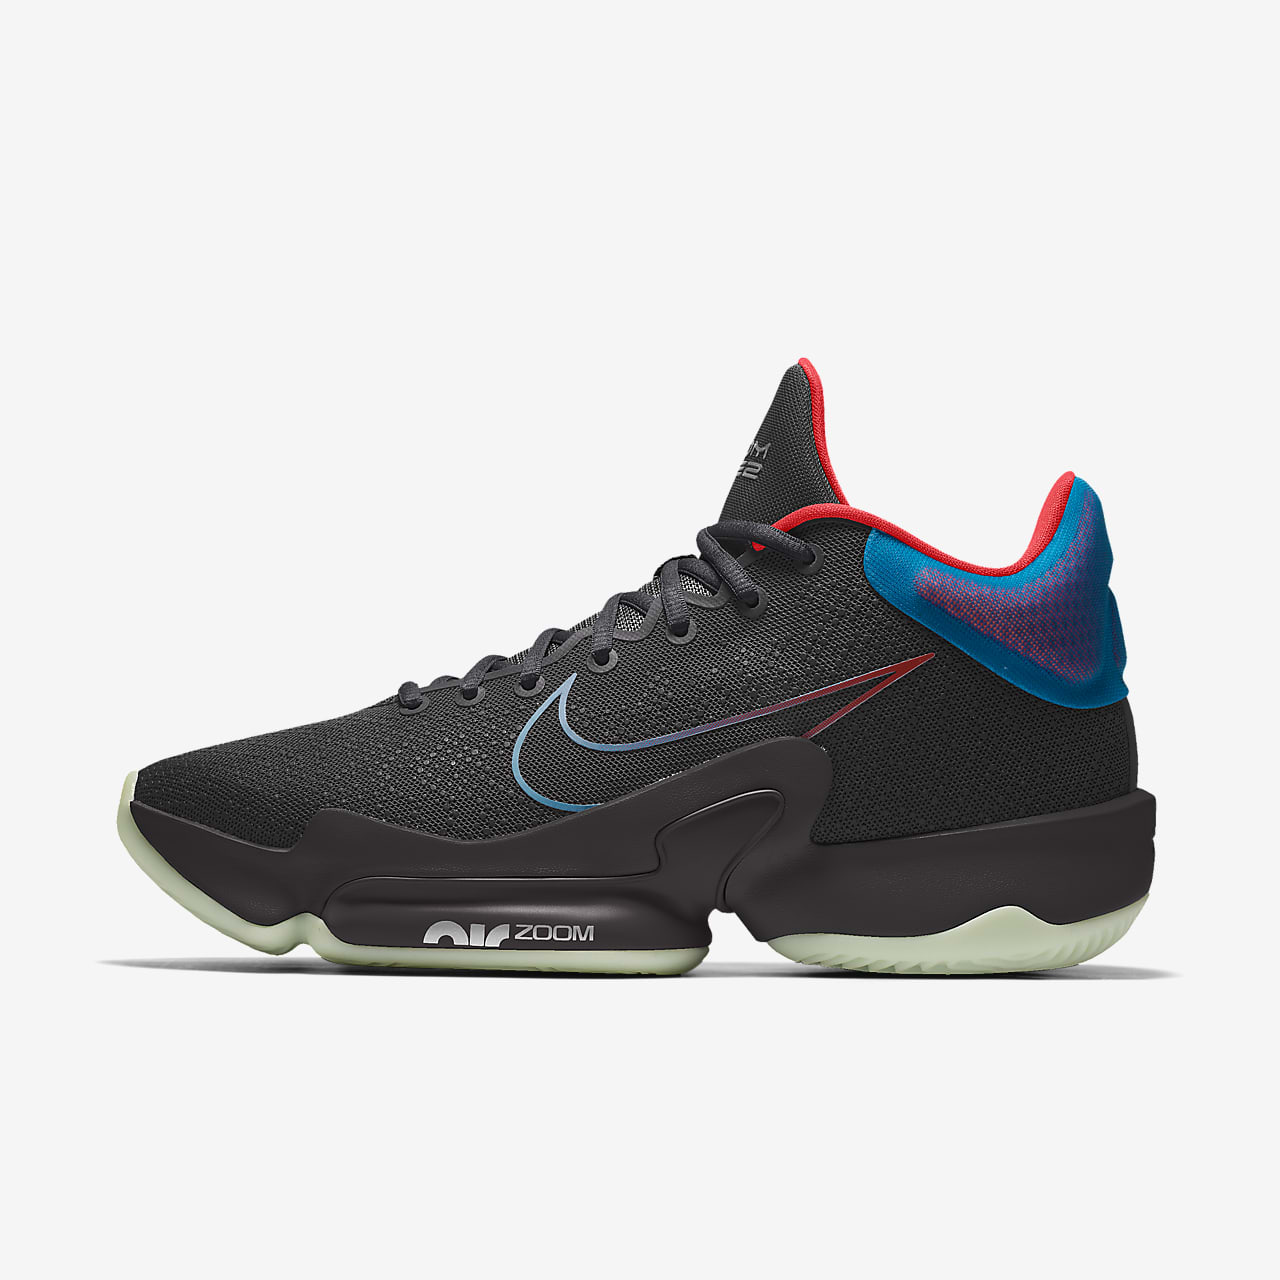 Nike Zoom Rize 2 By You 专属定制篮球鞋